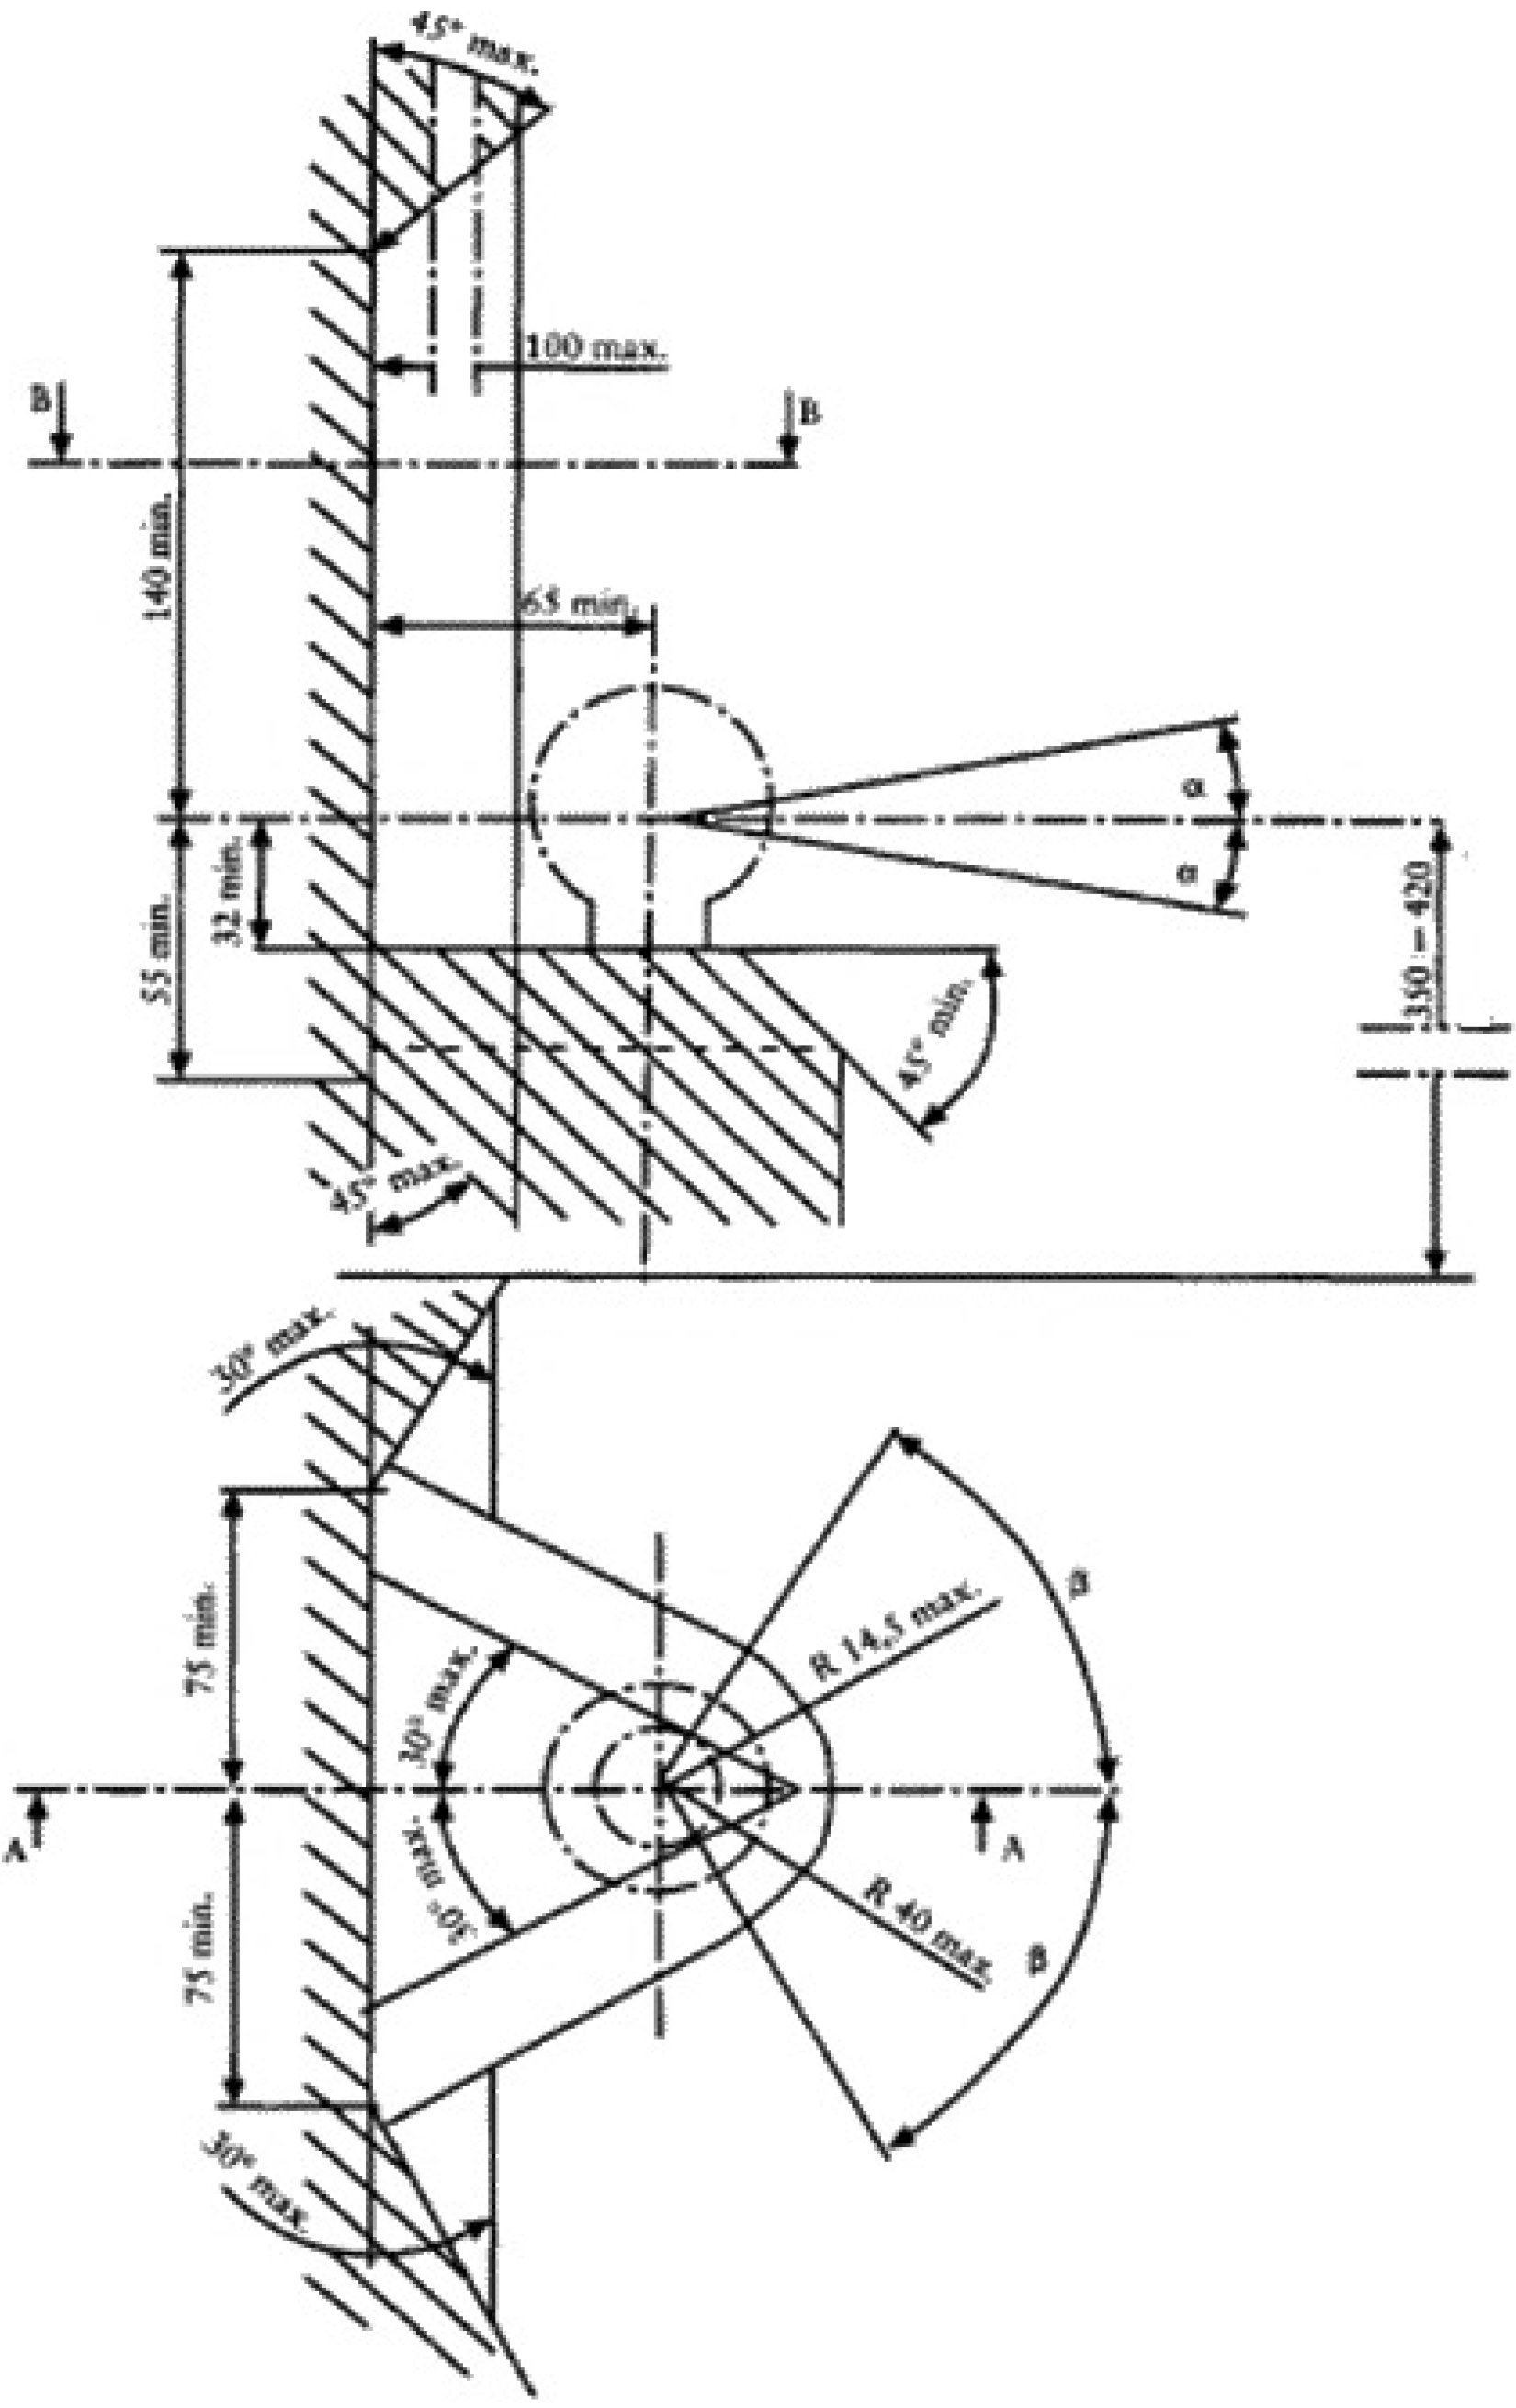 Eur Lex 02014r0044 20180320 En Amd A Diagram Of Engine Piston Clearing Space For Coupling Balls Image